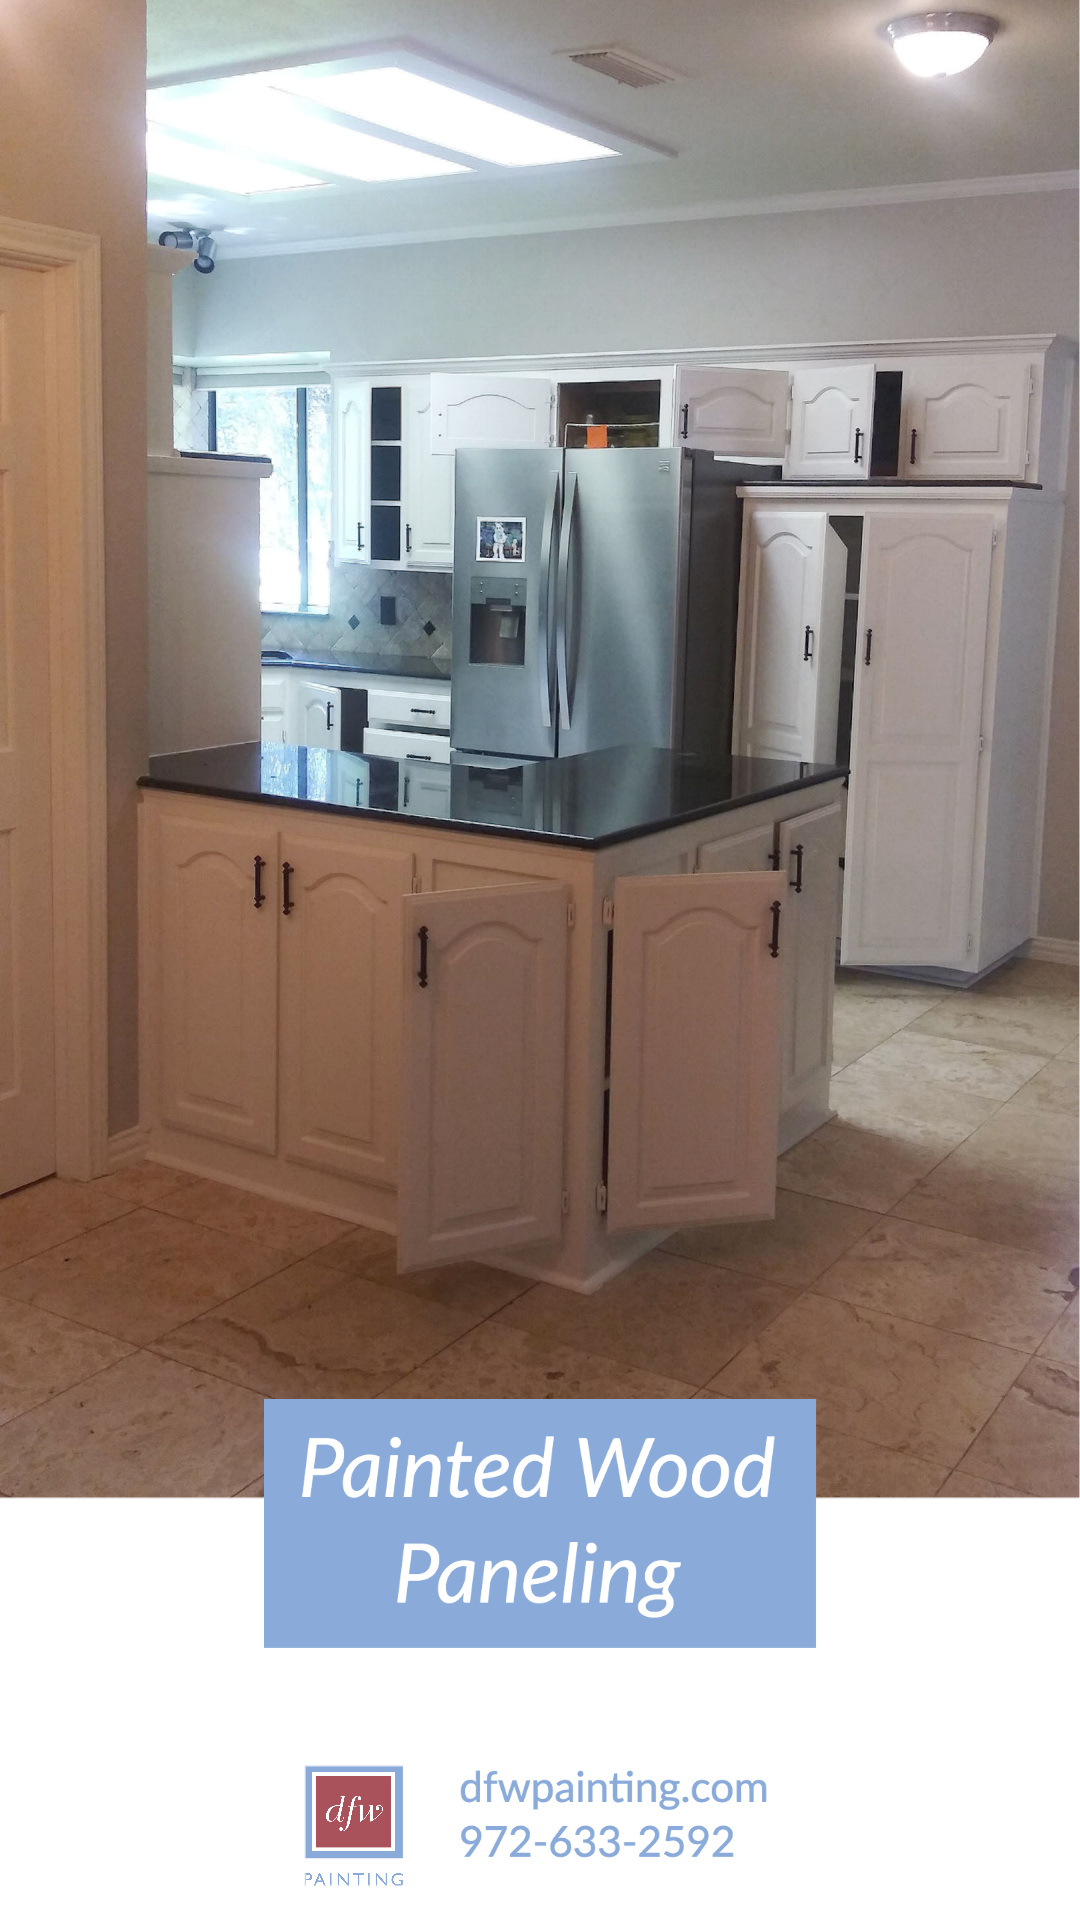 Updating Your Kitchen By Painting The Cabinets Dfw Painting In 2020 Refinishing Cabinets Refinish Kitchen Cabinets Refinished